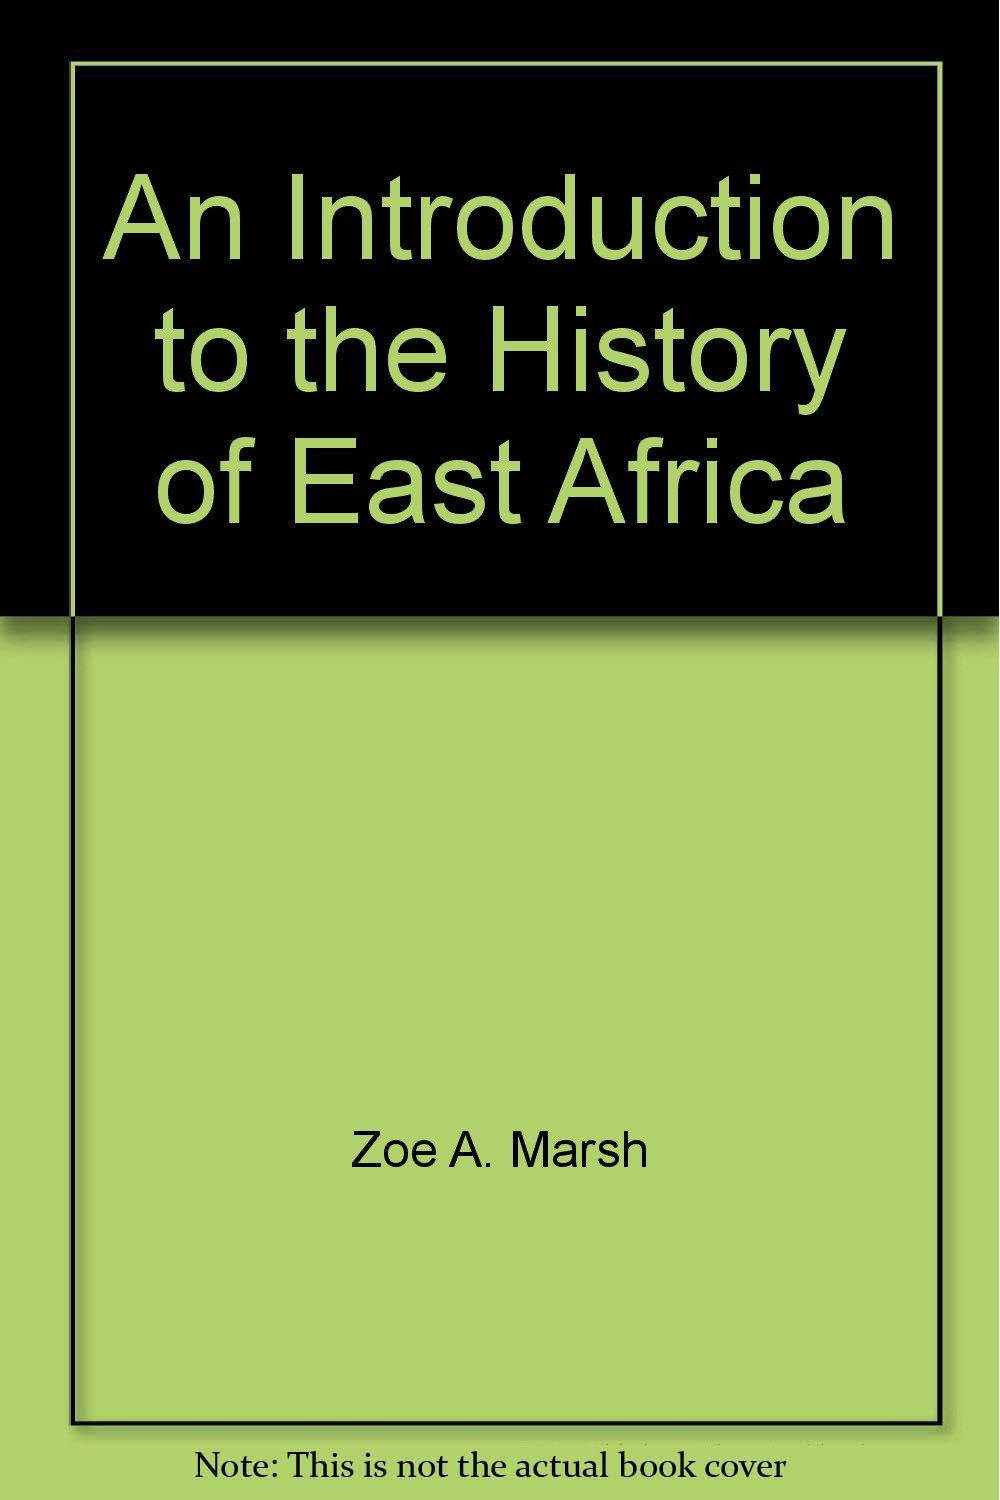 An introduction to the history of East Africa